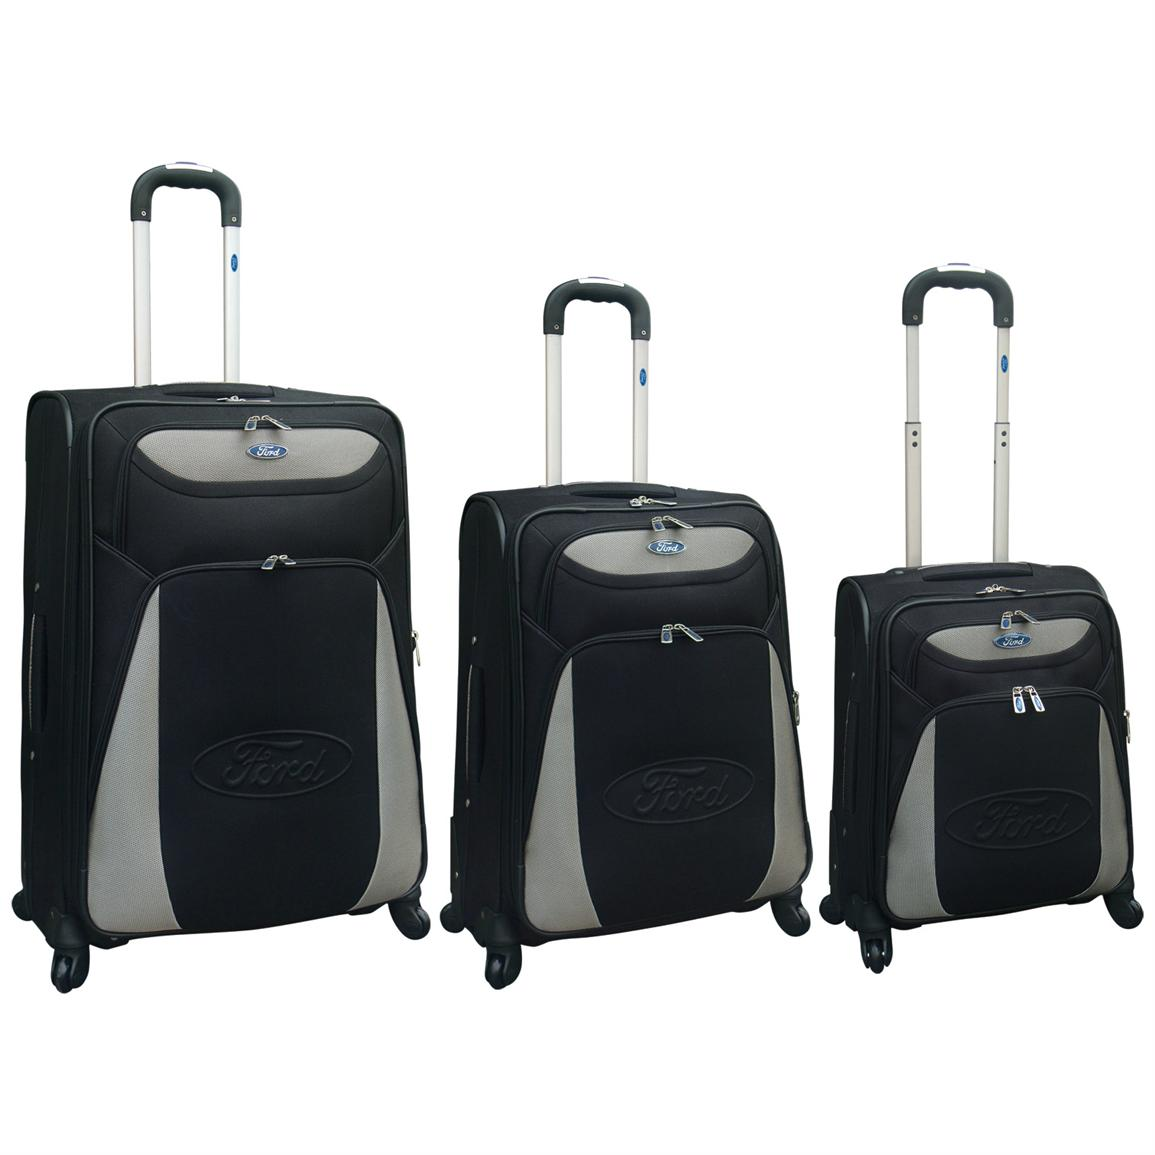 Travelers Club™ Ford Taurus 3-Pc. Expandable Hybrid 360° Spinner Luggage Set, Black